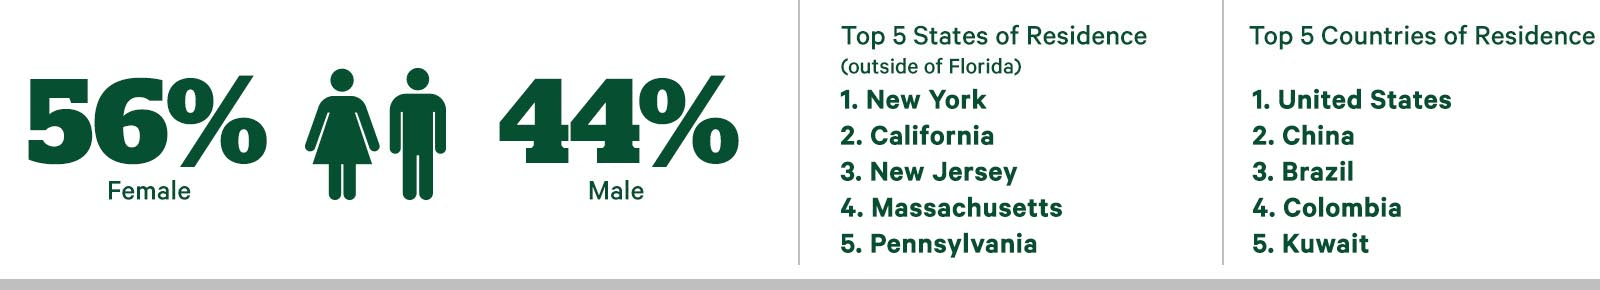 54% female, 46% male, Top 5 States of Residence (outside of Florida) 1. New York 2. New Jersey 3. California 4. Massachusetts 5. Illinois, Top 5 Countries of Residence - 1.United States 2. China 3. Ecuador 4. Brazil  5. Colombia